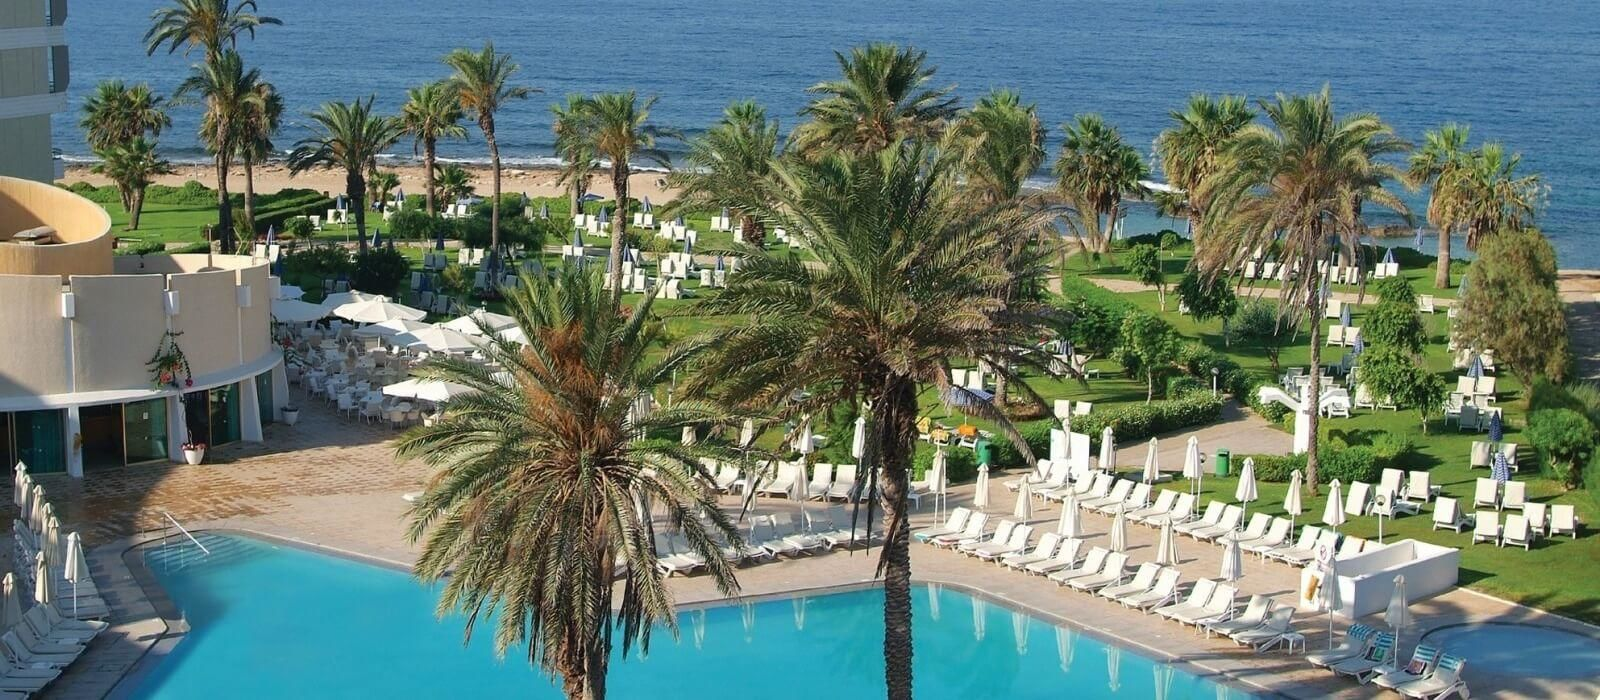 Louis Imperial Beachplus Paphos  OFFICIAL SITE  4